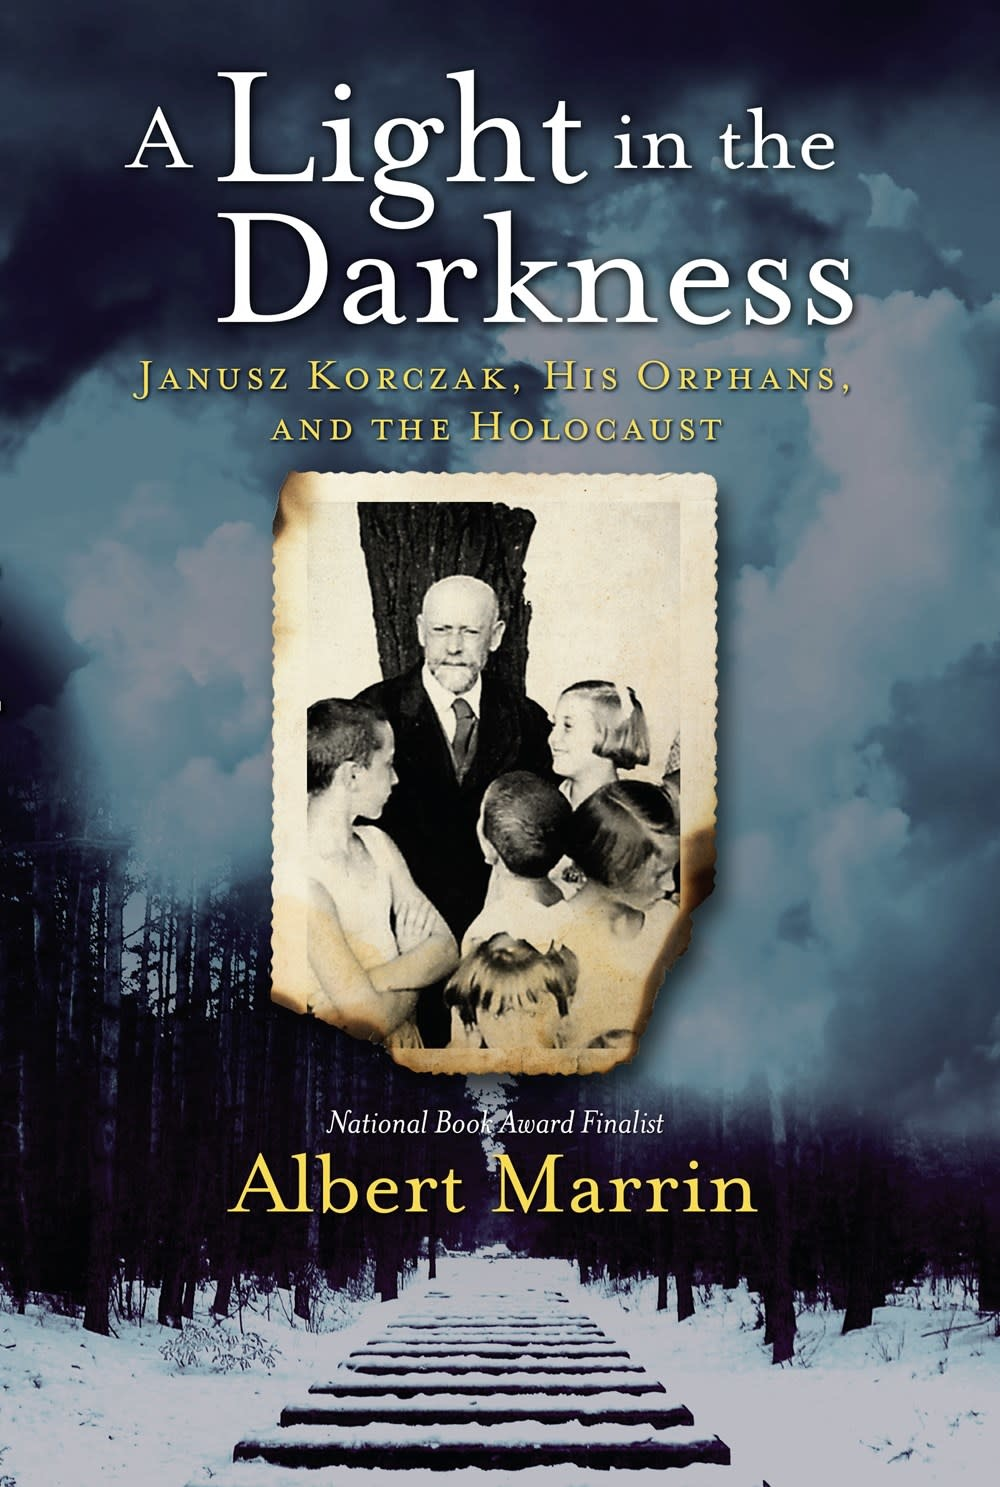 Knopf Books for Young Readers A Light in the Darkness: Janusz Korczak... and the Holocaust